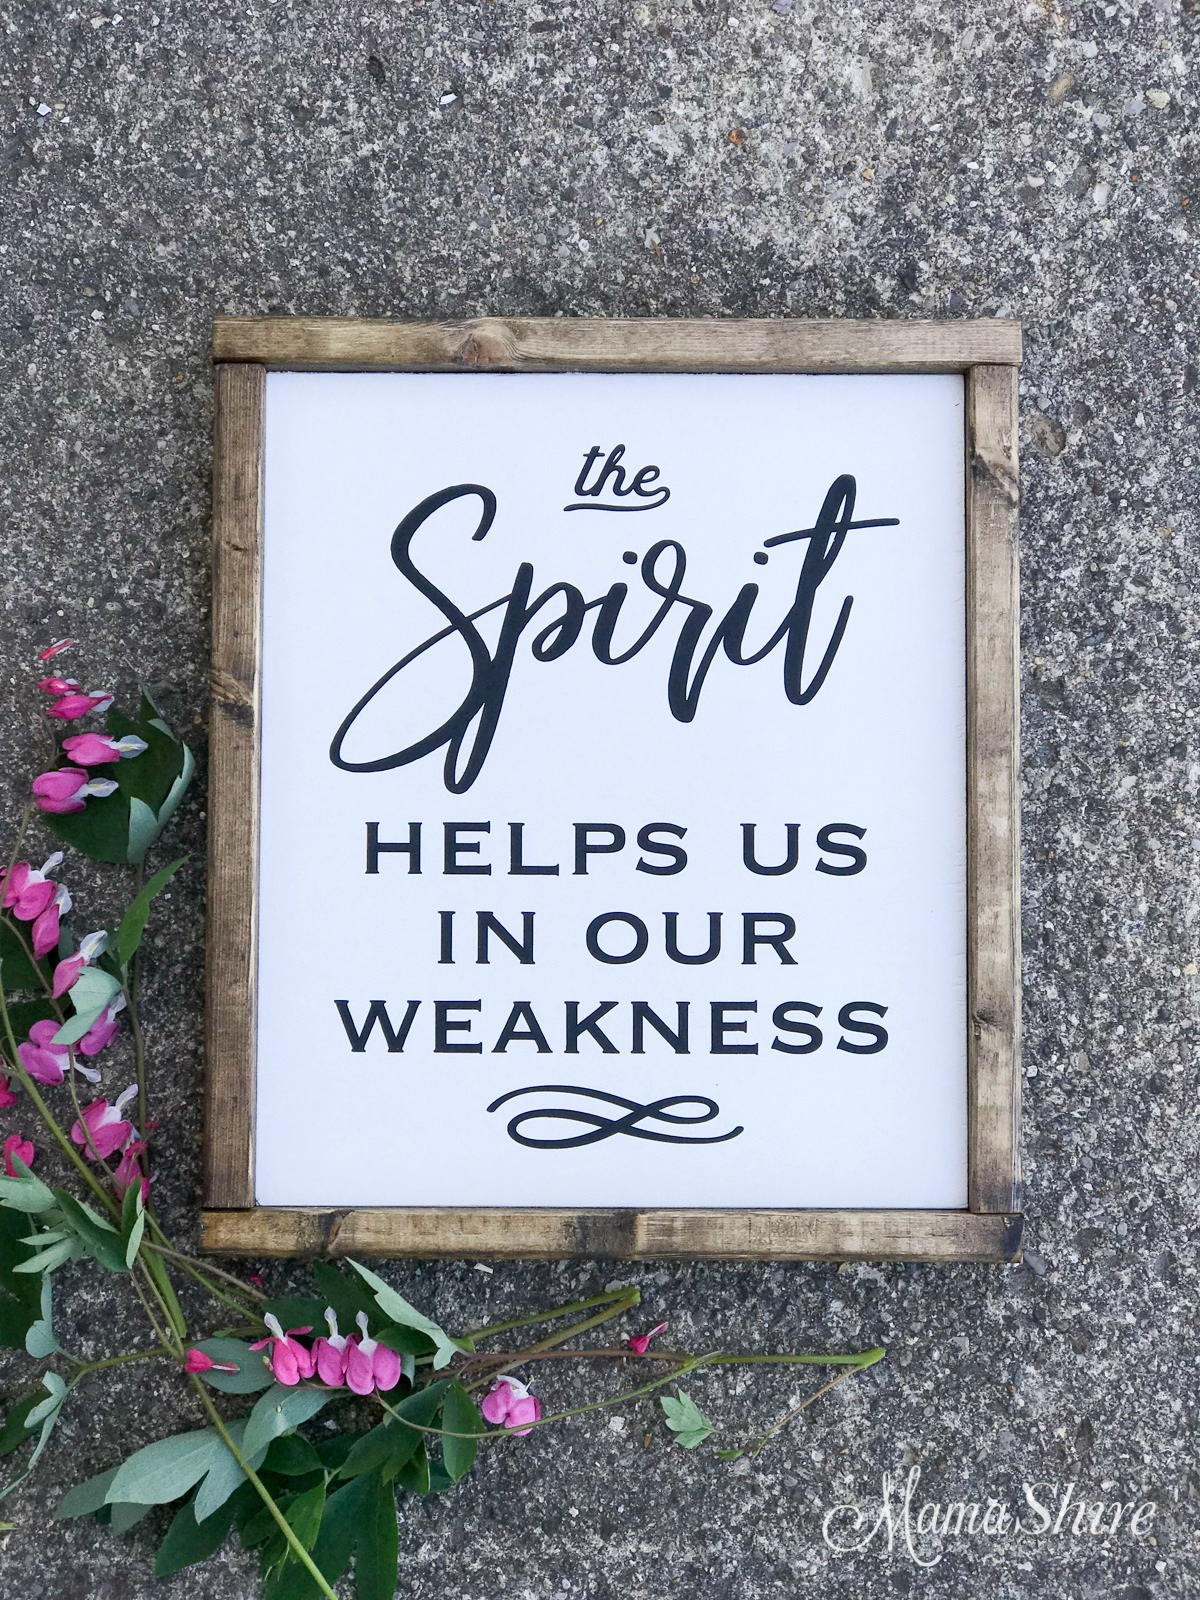 The Spirit helps us in our weakness.